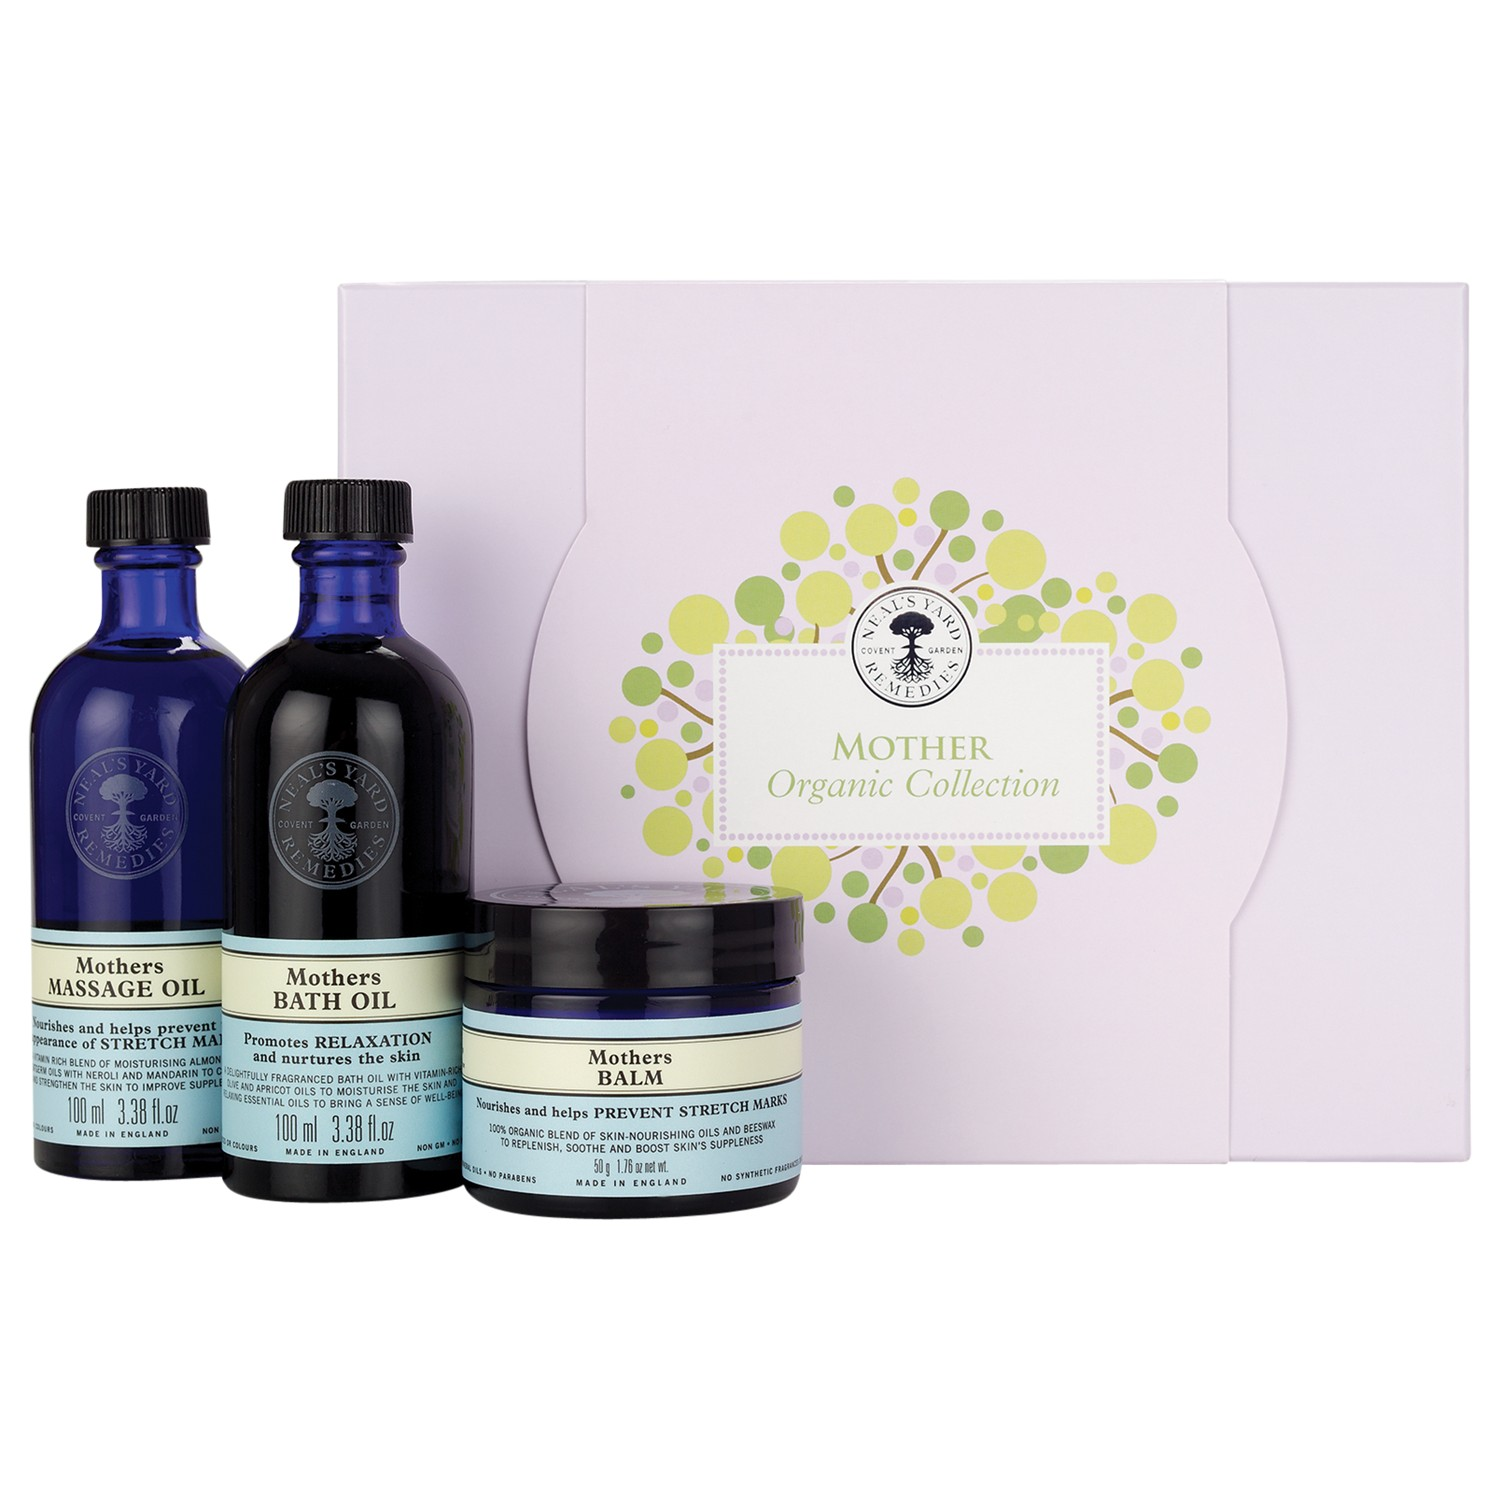 Neal's Yard Mother's Organic Collection Gift Set